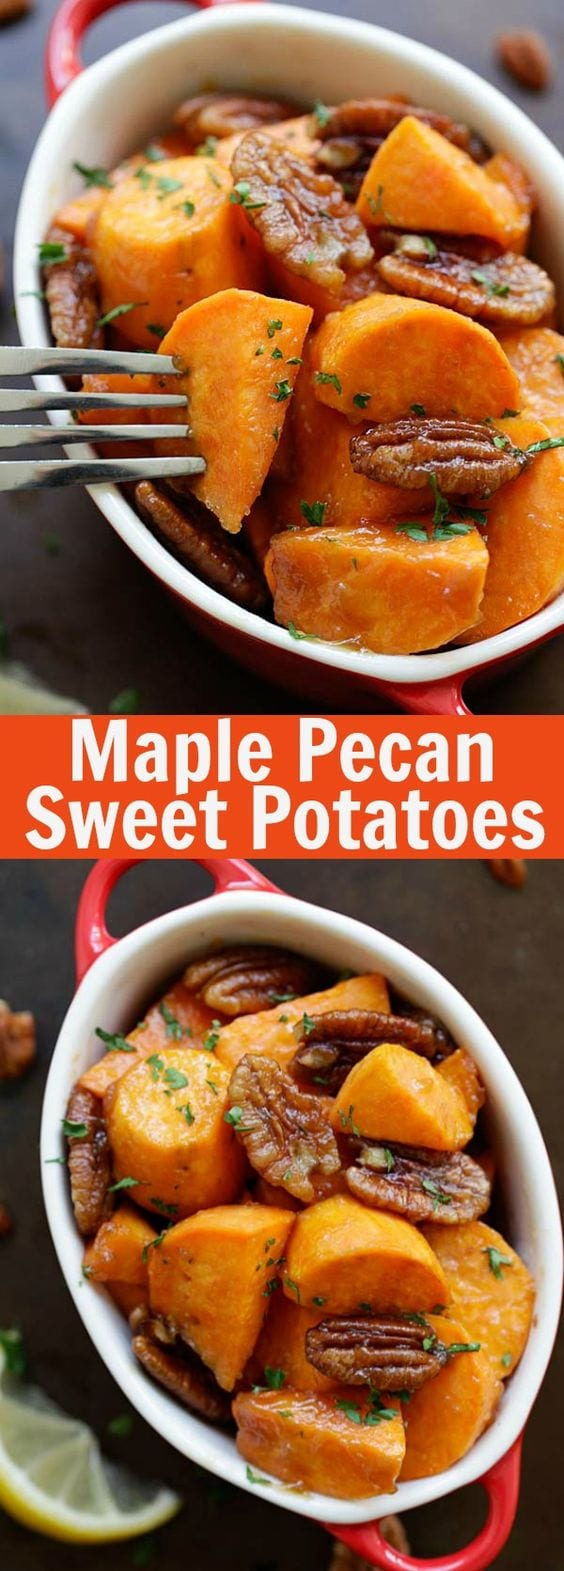 Maple Glazed Sweet Potatoes with Pecan - roasted sweet potatoes with a sticky sweet maple glaze plus nutty pecan. A holiday favorite | rasamalaysia.com